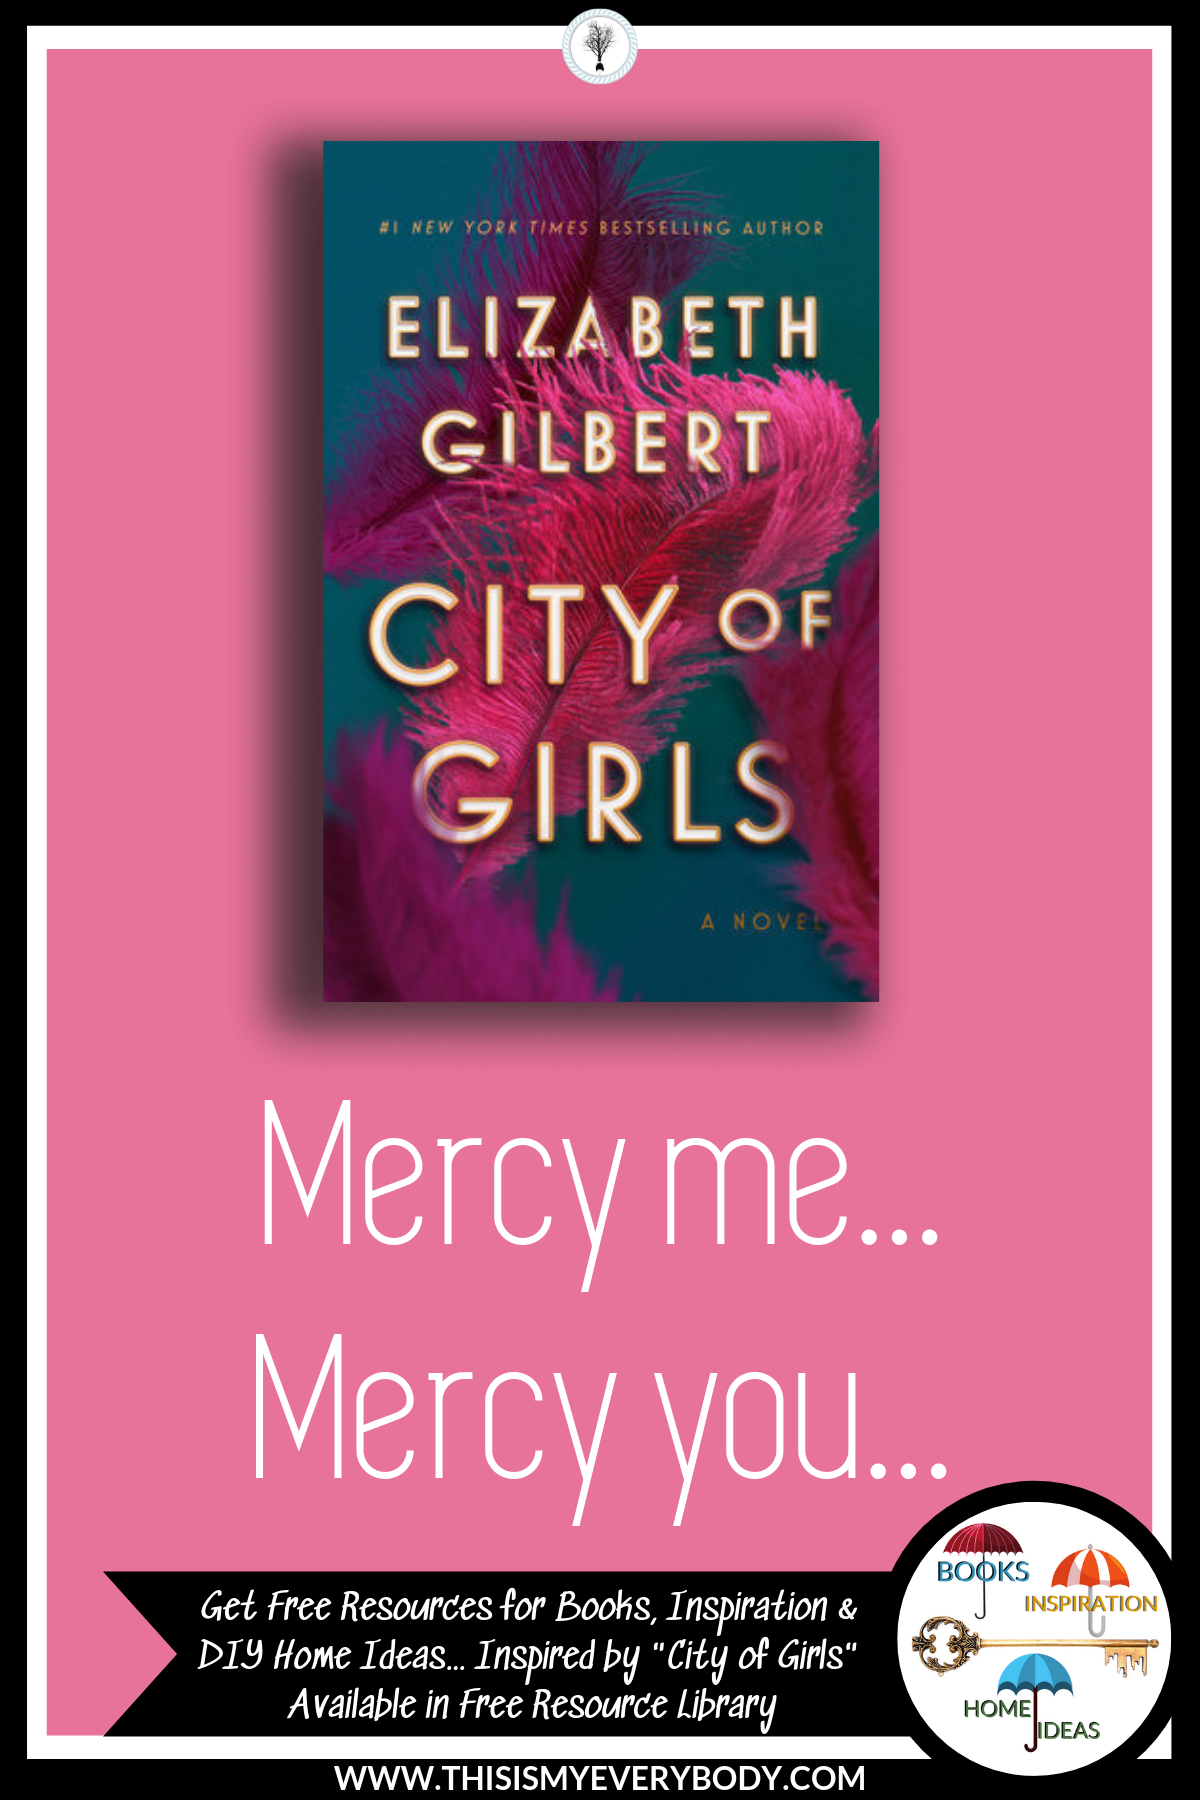 """City of Girls  has enormous buzz as a super-hot bestseller that delivers super-hot reading. And, I agree that a few sections will certainly have you longing for a good martini to sip slowly as you reminisce on your own """"moments of awakening"""". Thankfully, Elizabeth Gilbert delivers much, much more. It is a spectrum journey within the landscape of mercy. Mercy for ourselves. Mercy for others… 